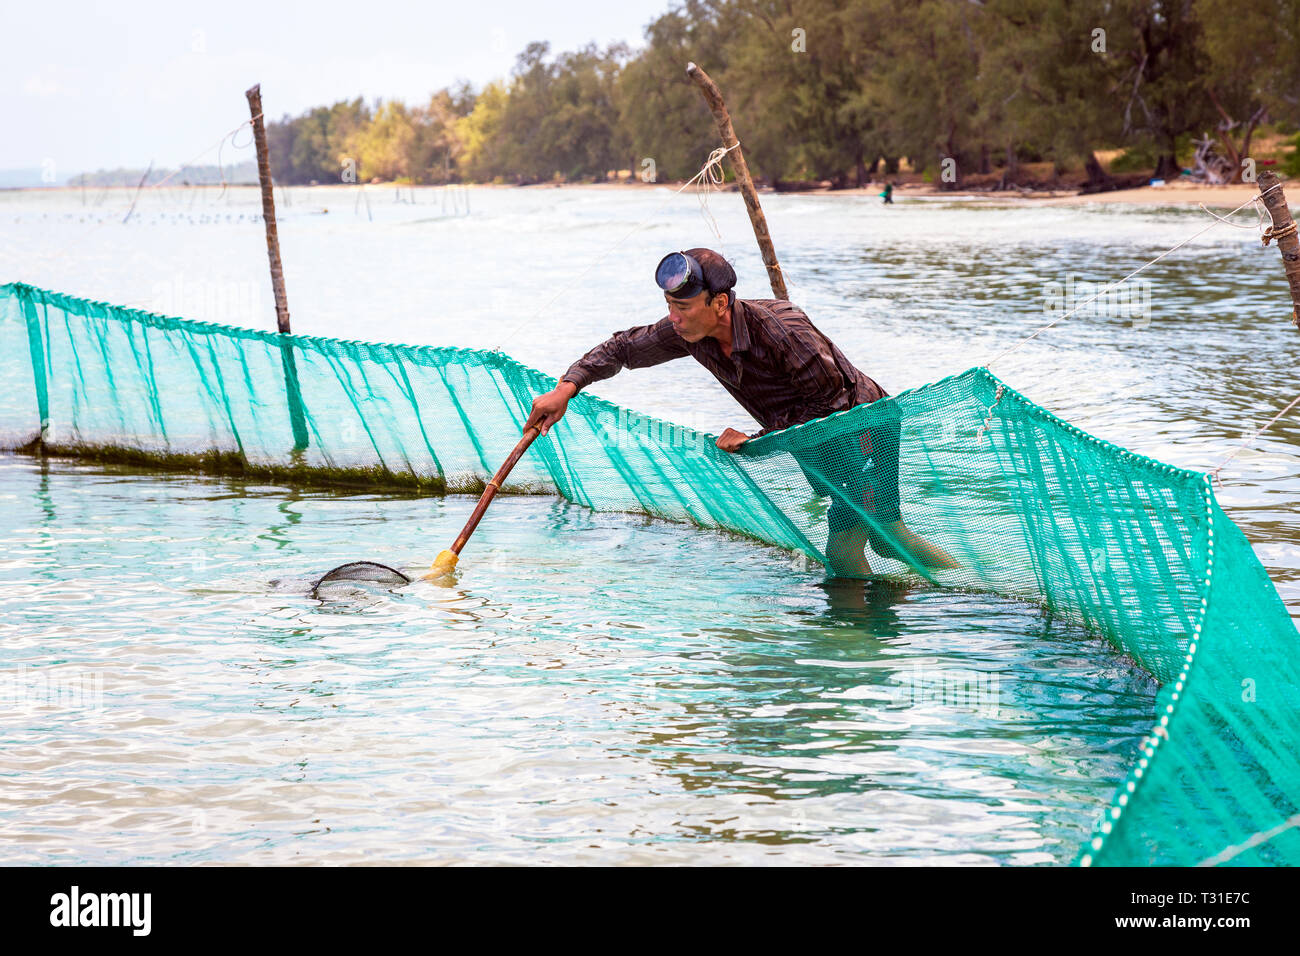 Local Vietnamese fisherman using a hand net and fishing nets off shore at Bai Dai Tay beach in the Gulf of Thailand, Phu Quoc Island, Vietnam, Asia. Stock Photo